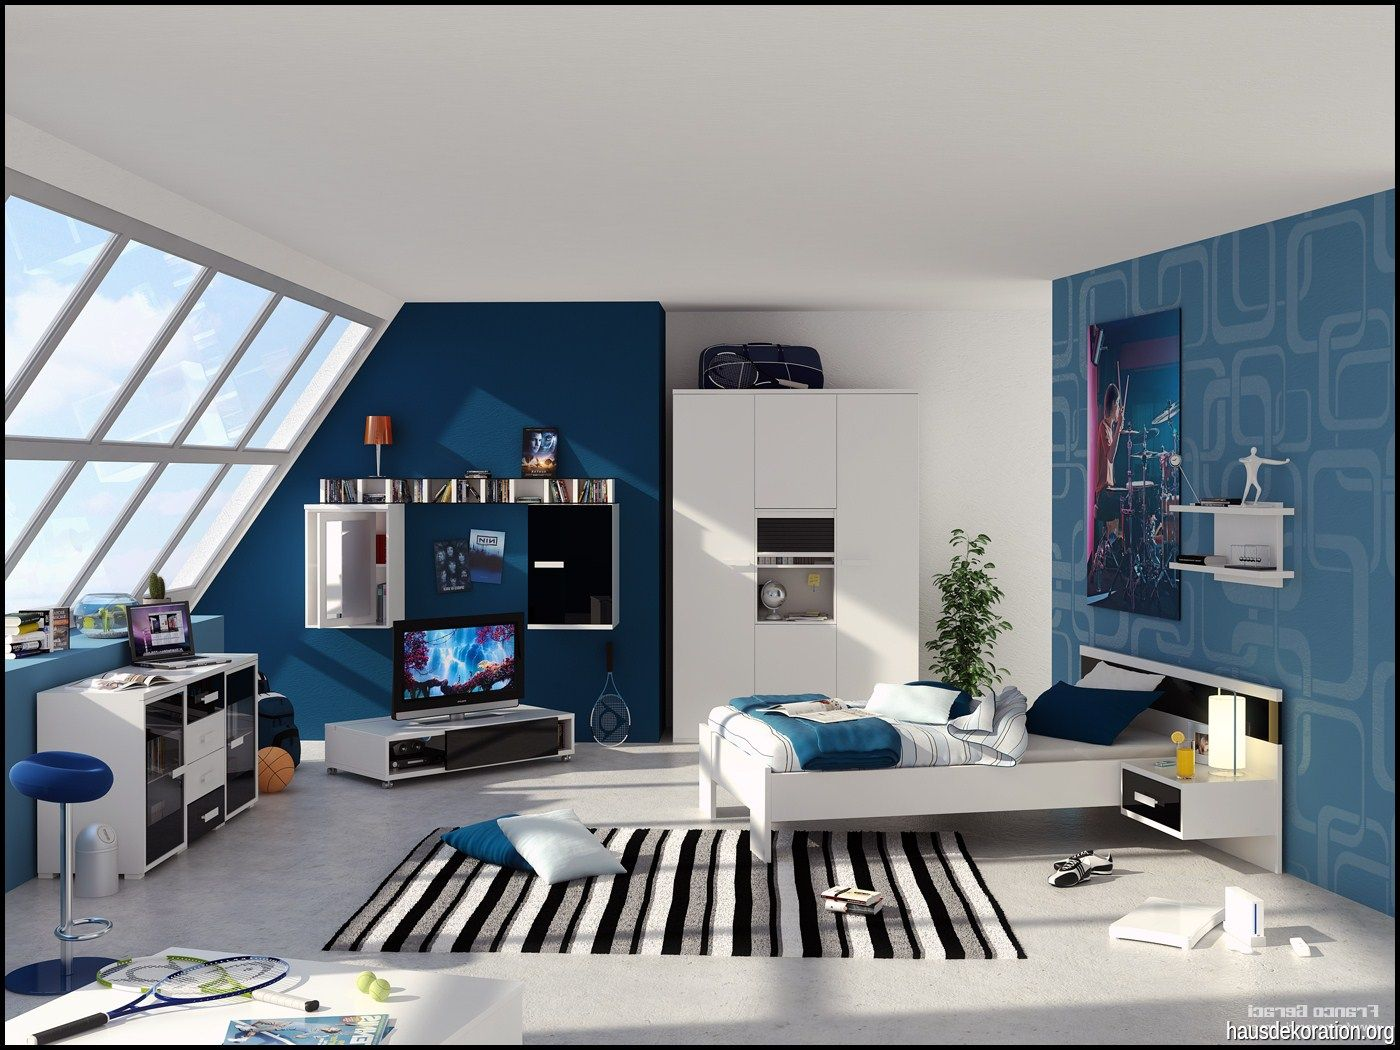 furniture inspiration furniture design for computers and tv bedroom exciting modern kids rooms ideas bedroom with blue wall white cupboard white pillows - Schlafzimmer Modern Fr Teenager